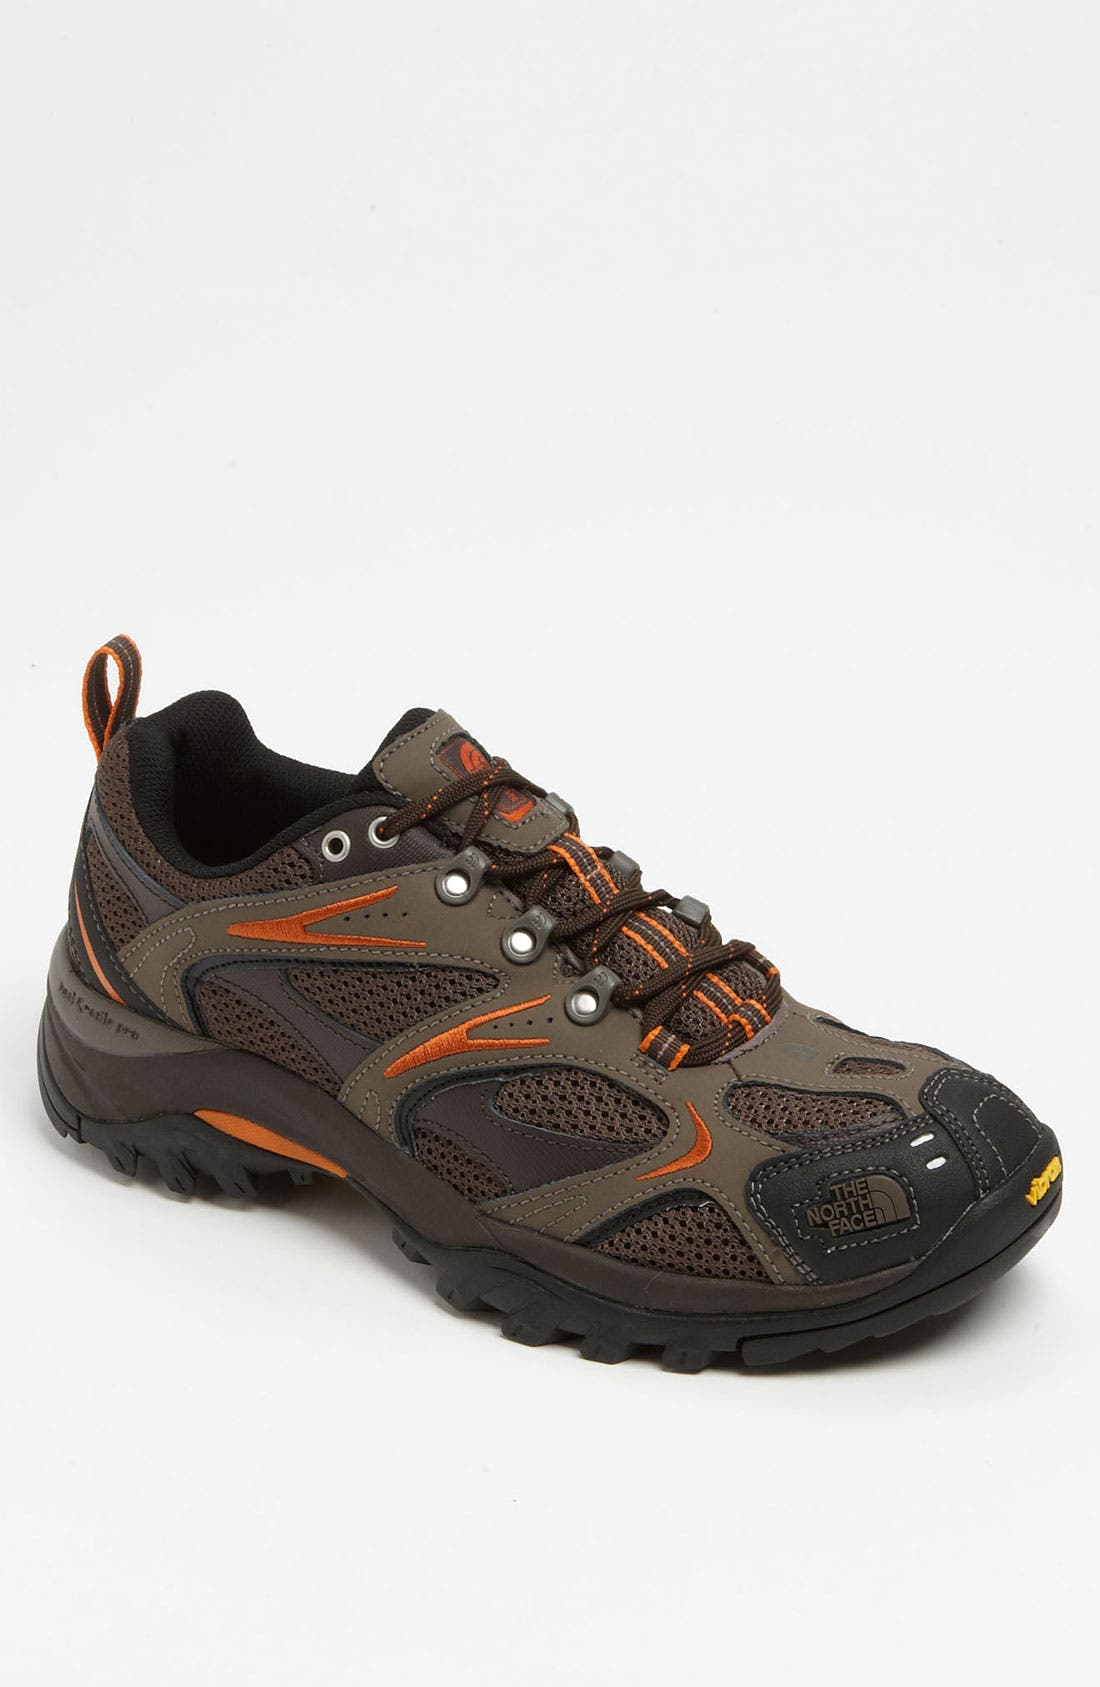 Alternate Image 1 Selected - The North Face 'Hedgehog III' Hiking Shoe (Men)